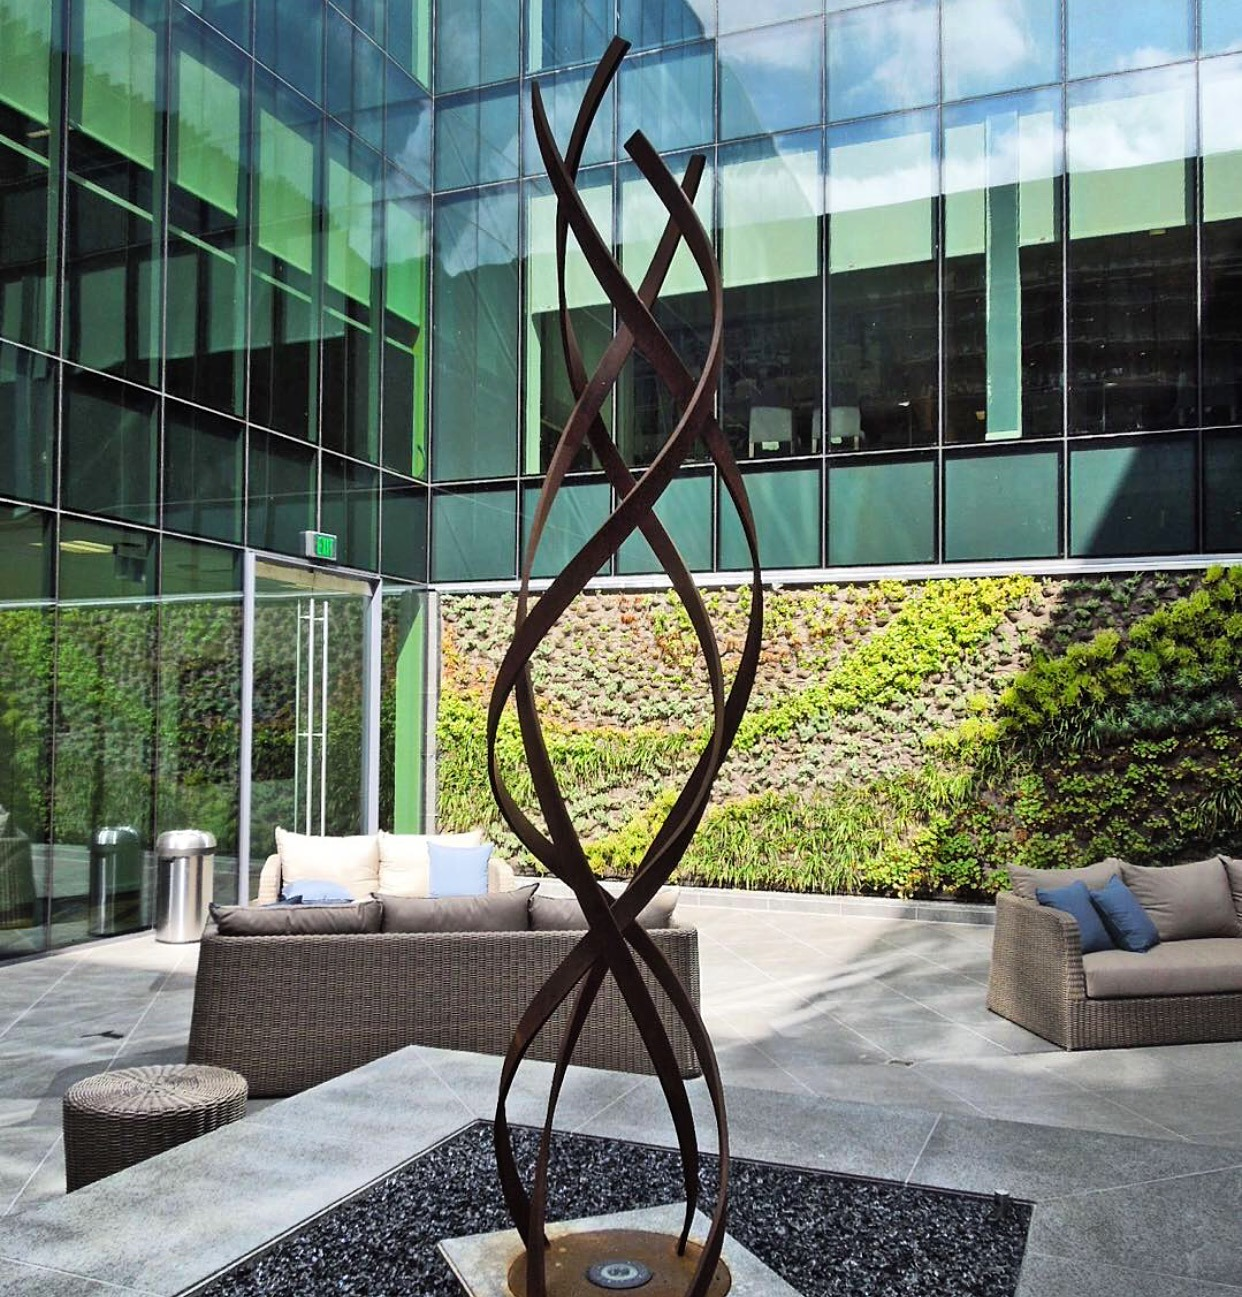 kismet stainless steel outdoor art sculpture terrasculpture